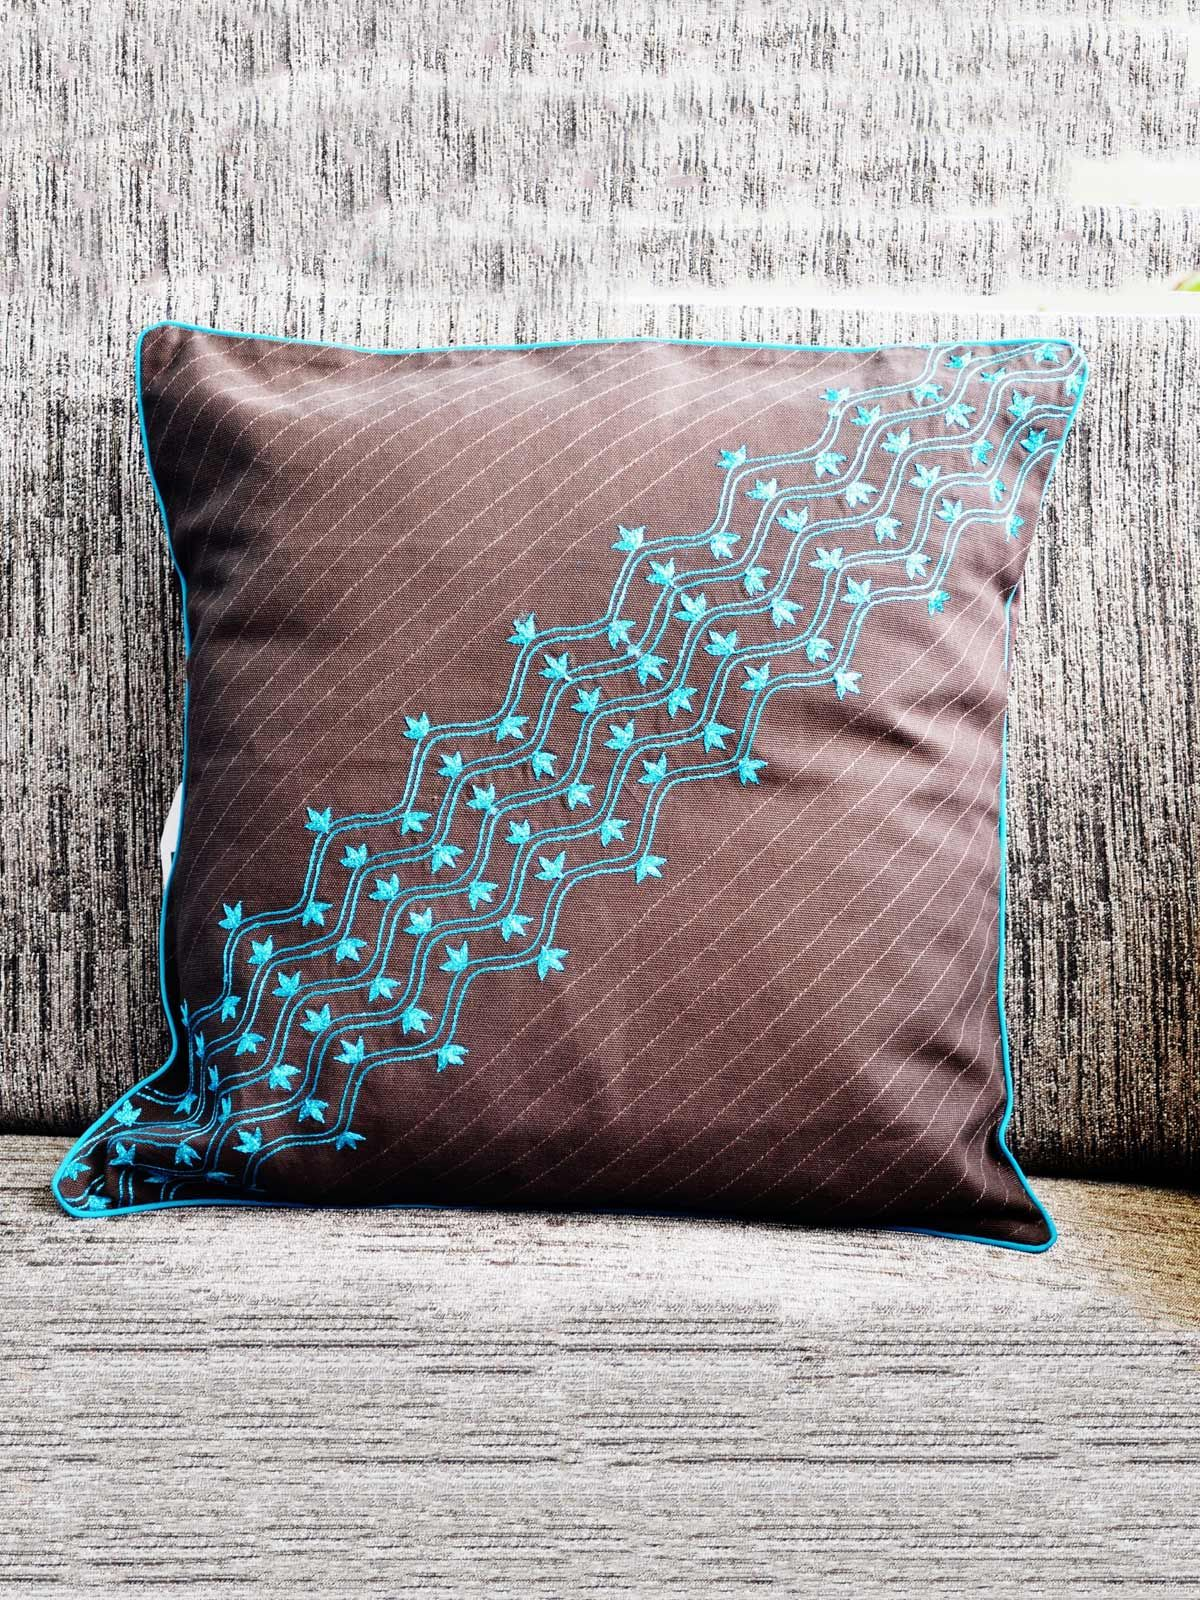 Handmade Embroidered Cushion cover for bed or sofa set (Brown)